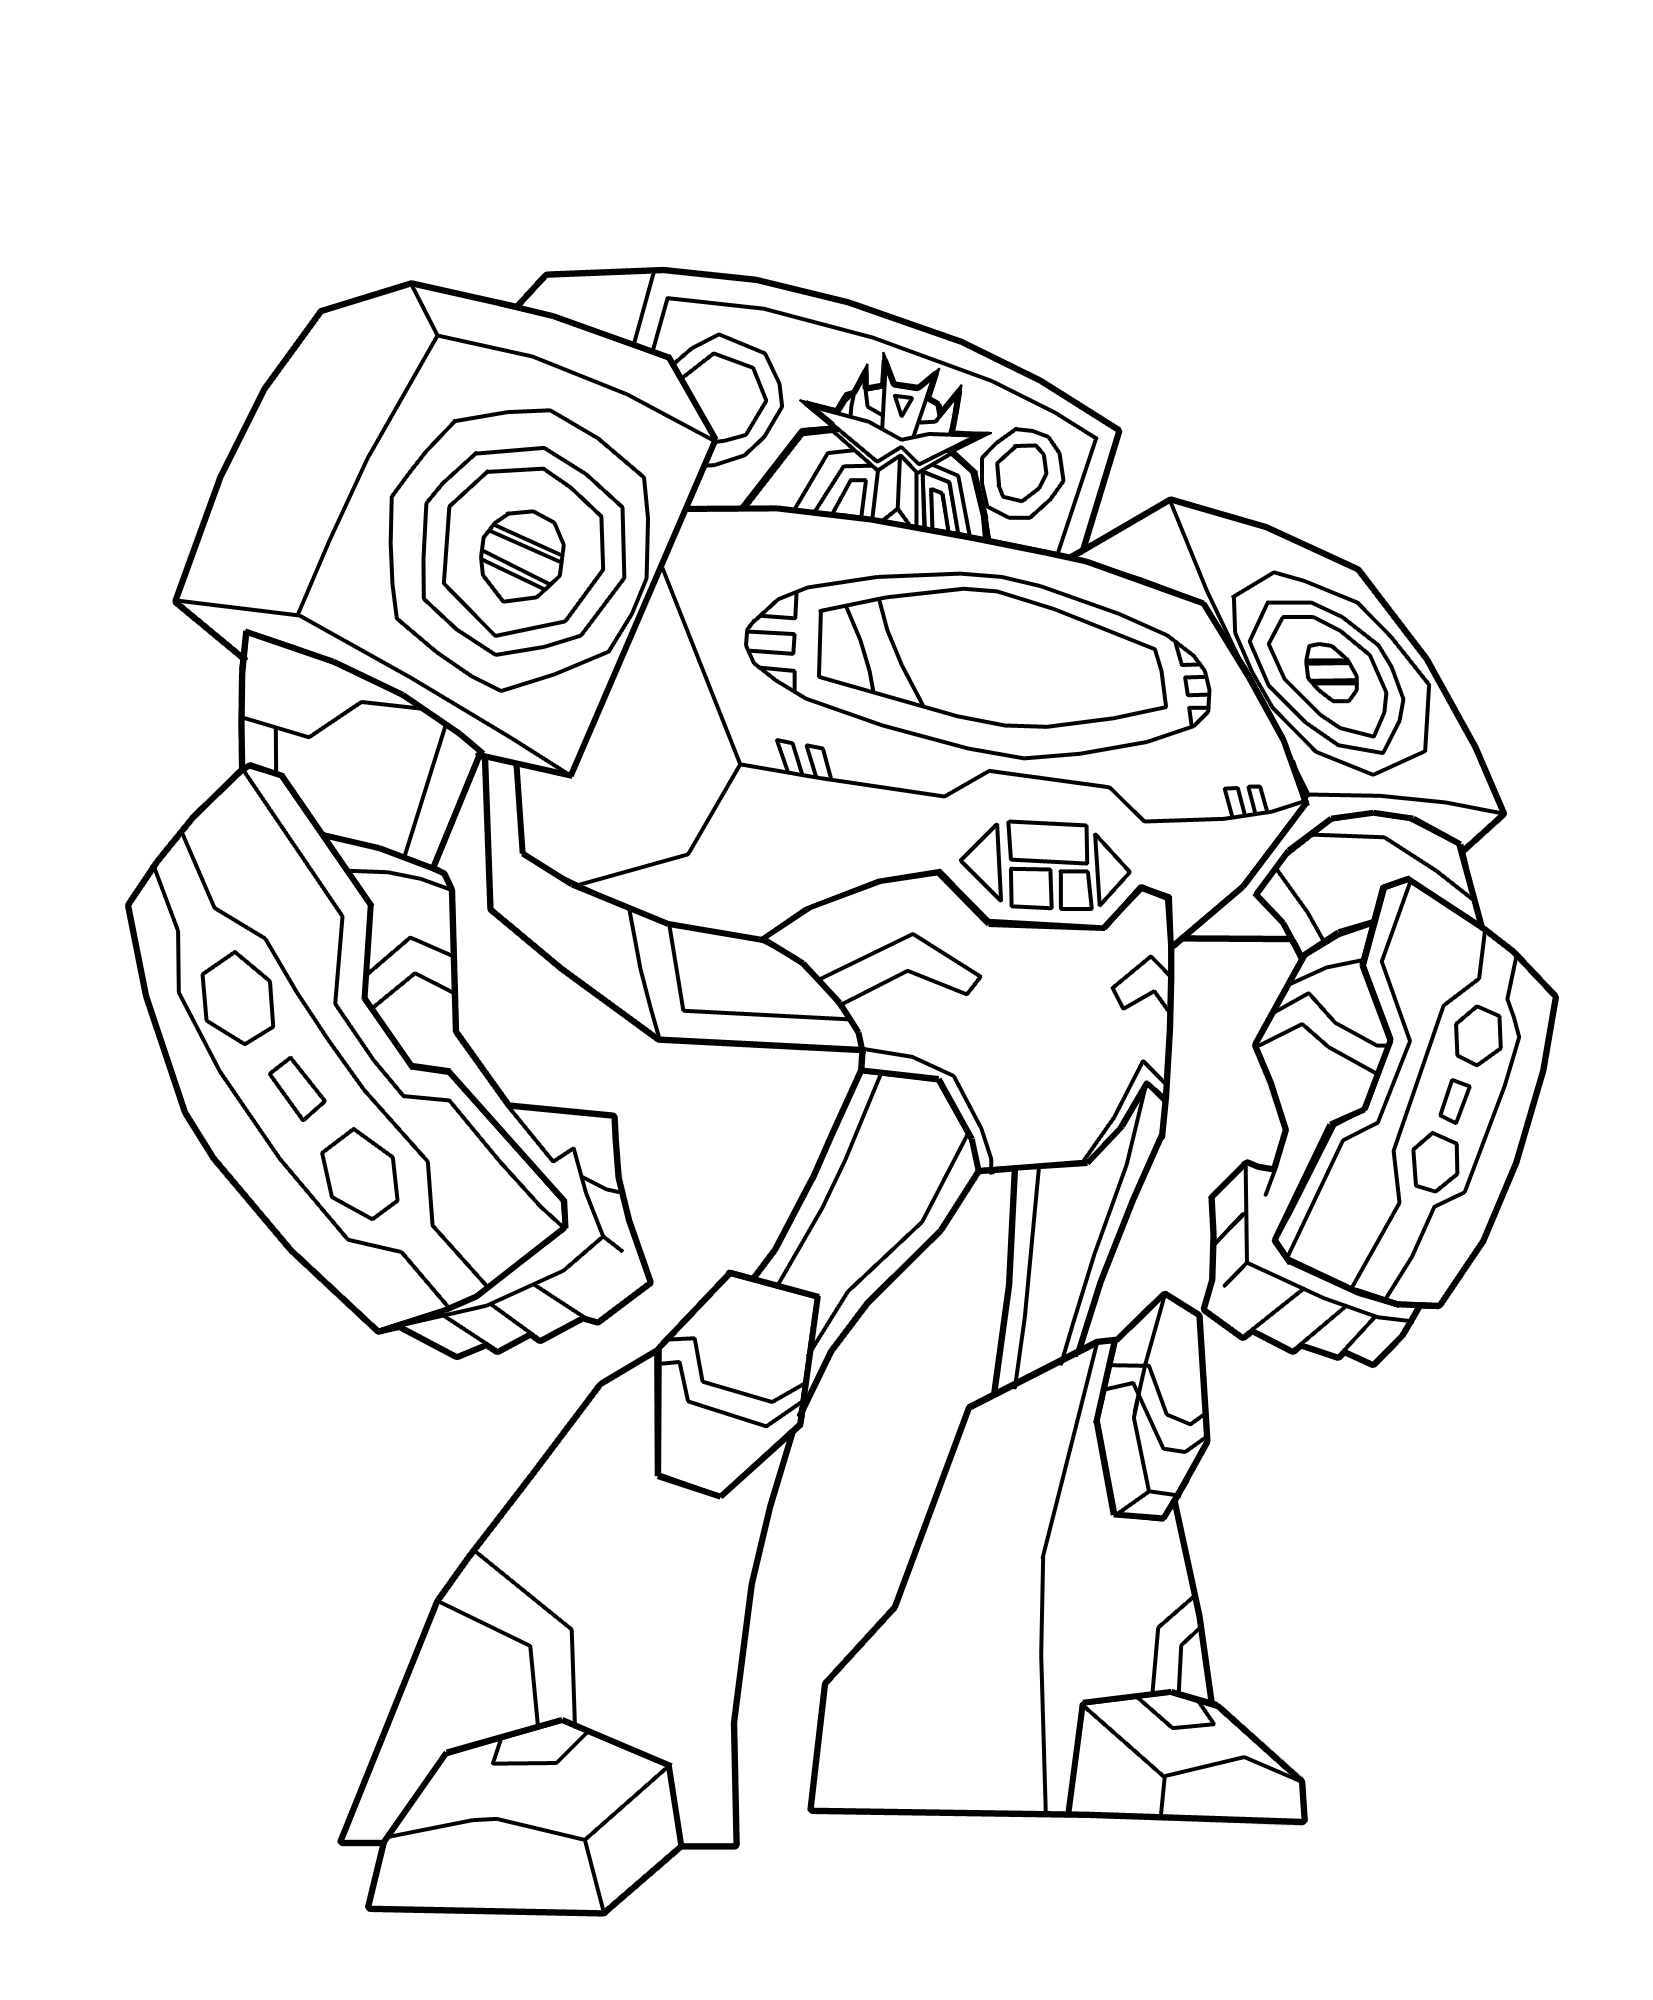 Hasbro Transformers Coloring Pages